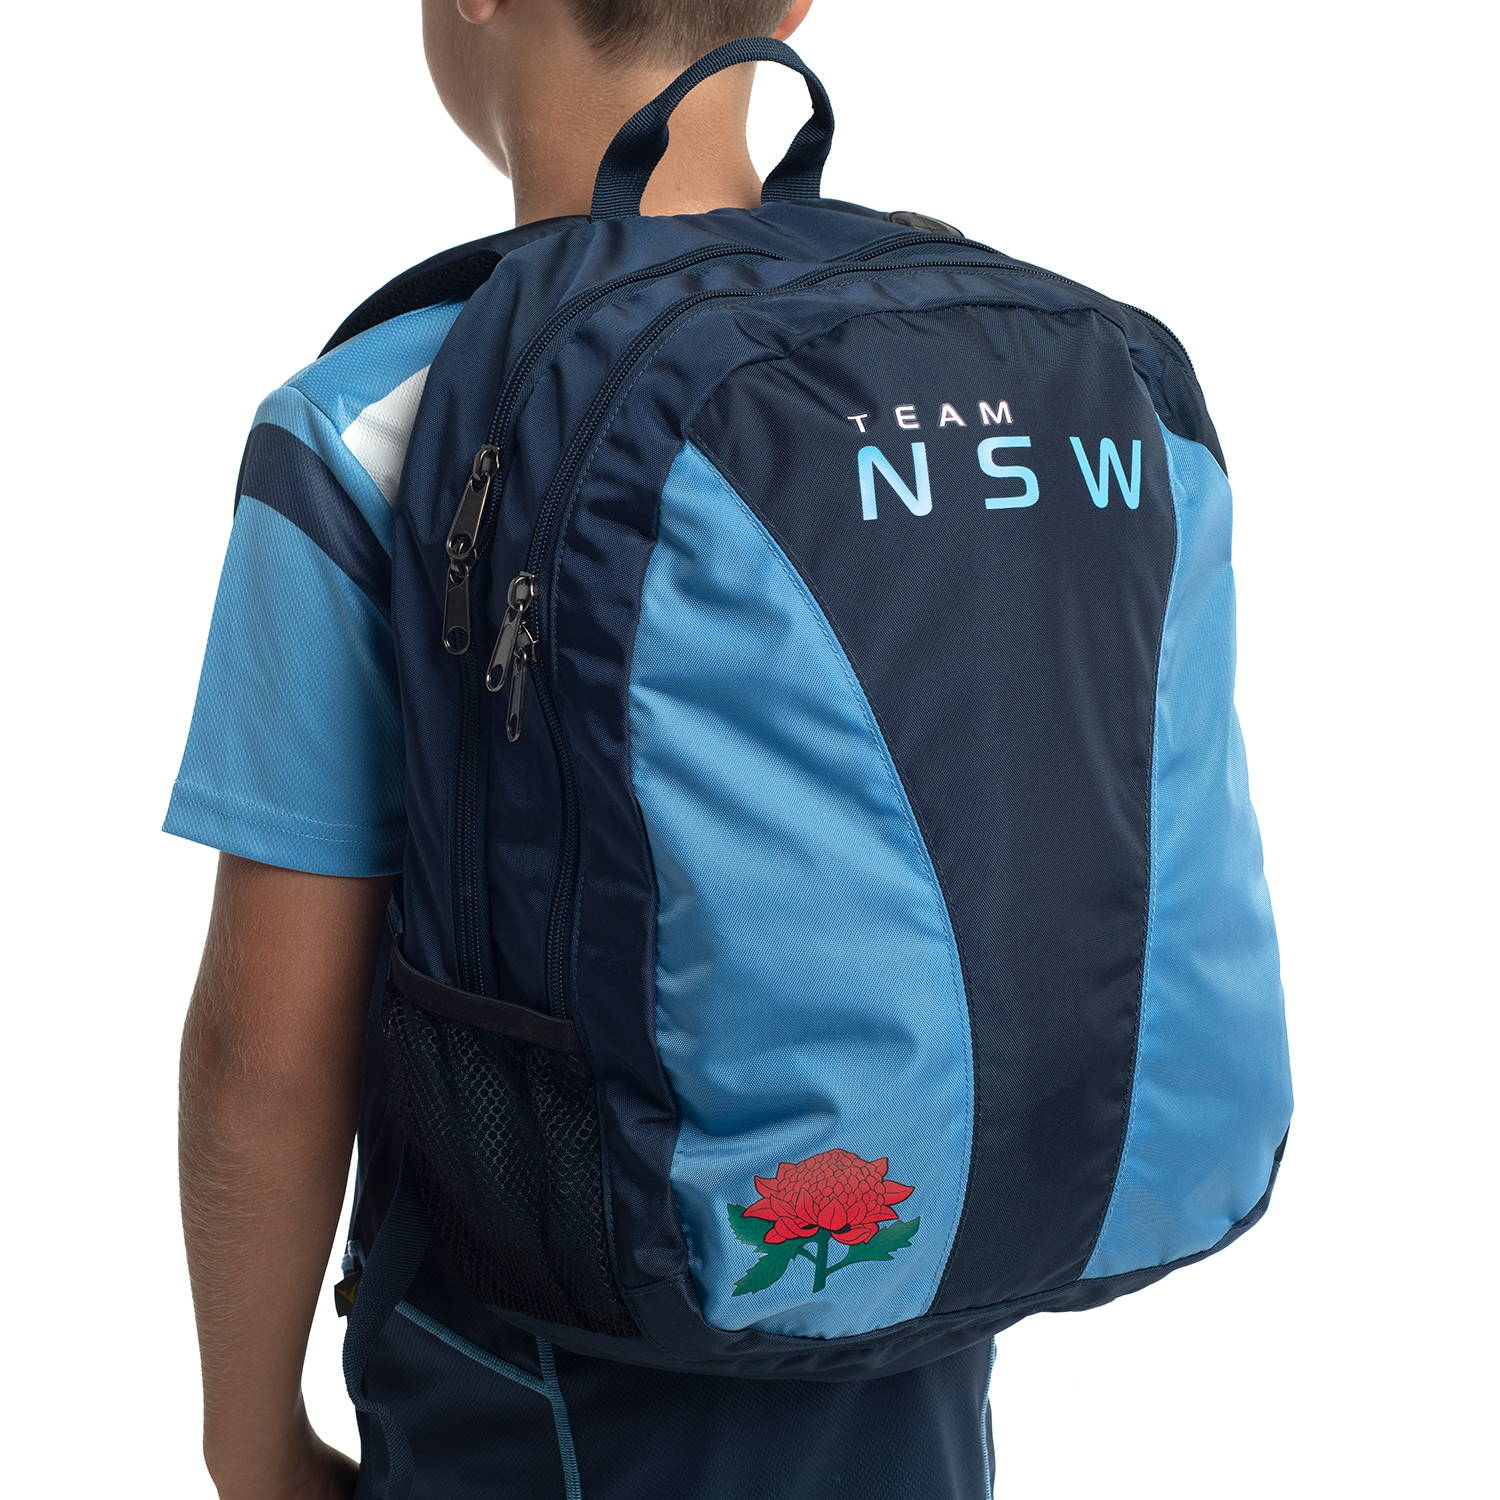 Custom Sports backpack for Team NSW by Valour Sport